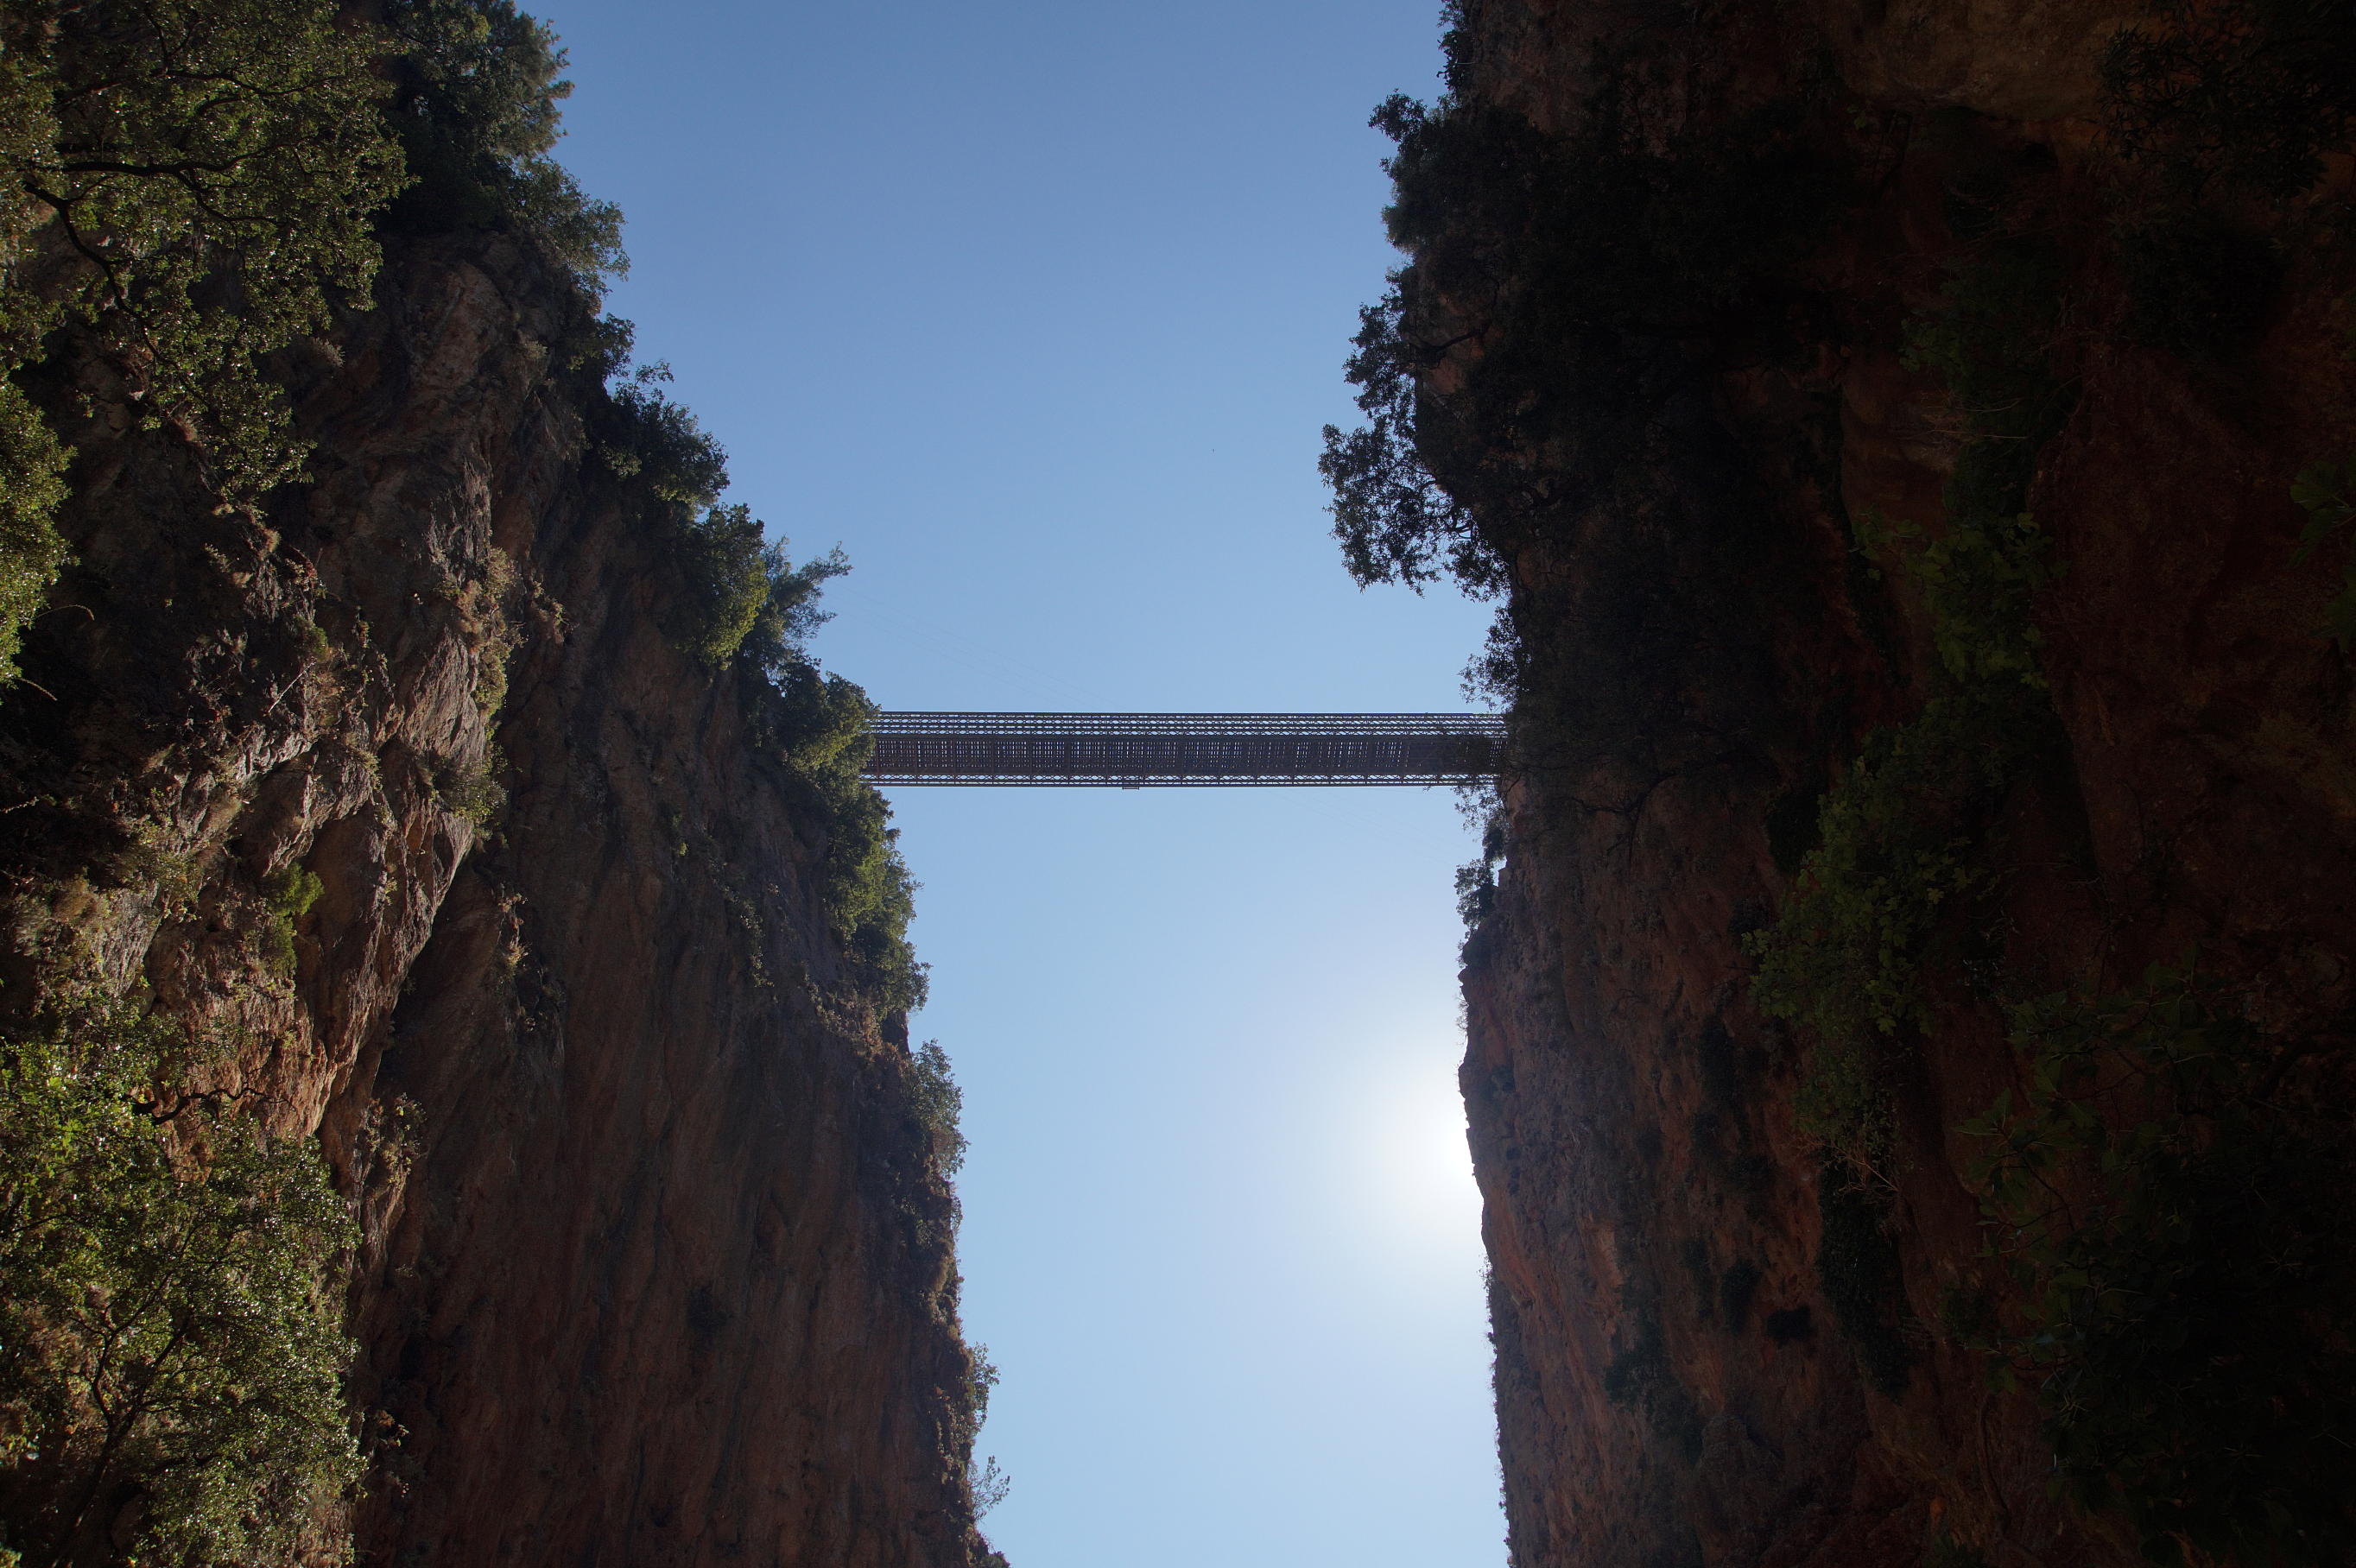 Aradena Gorge Bridge